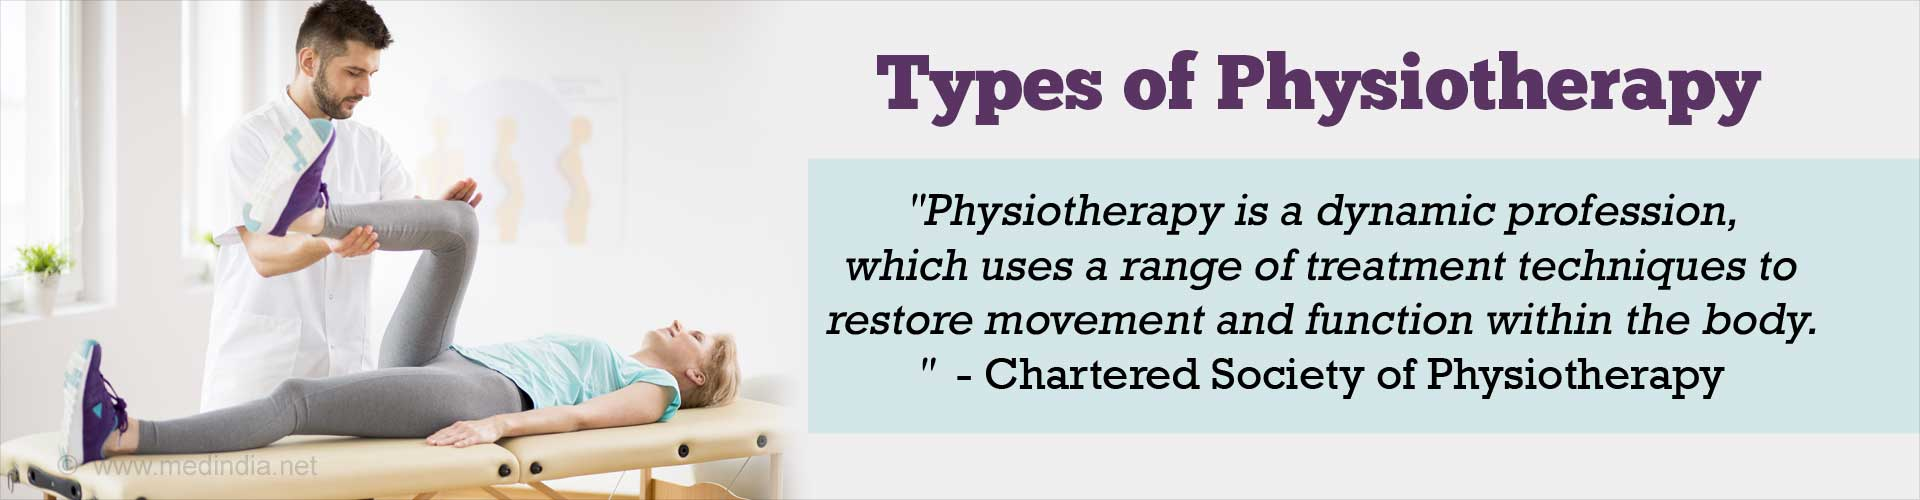 Types of Physiotherapy / Physiotherapy - Types